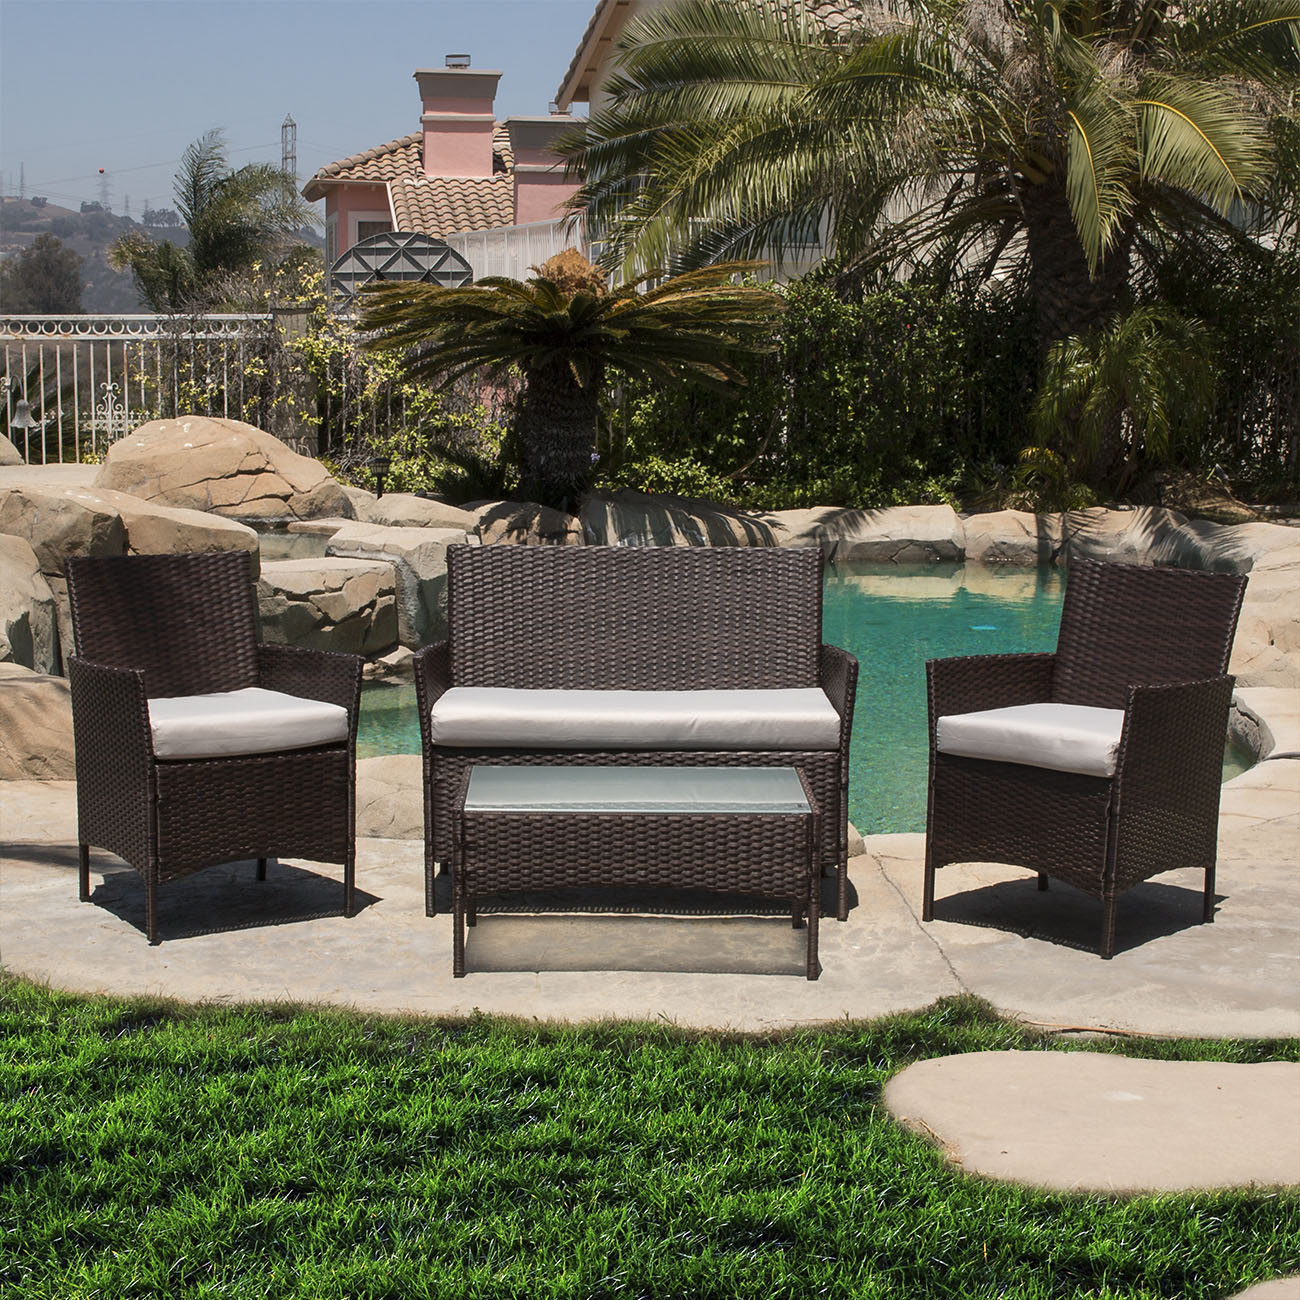 4 pc rattan furniture set outdoor patio garden sectional for Outdoor wicker patio furniture